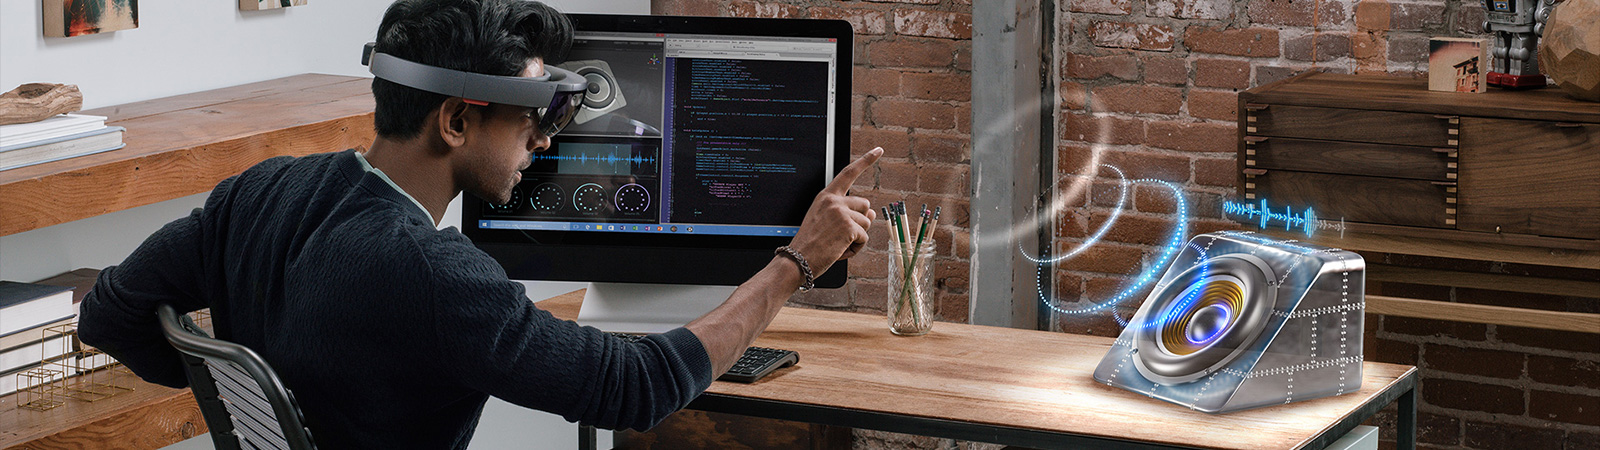 Man wearing HoloLens with code editor open on his monitor, interacting with a speaker hologram on his desk